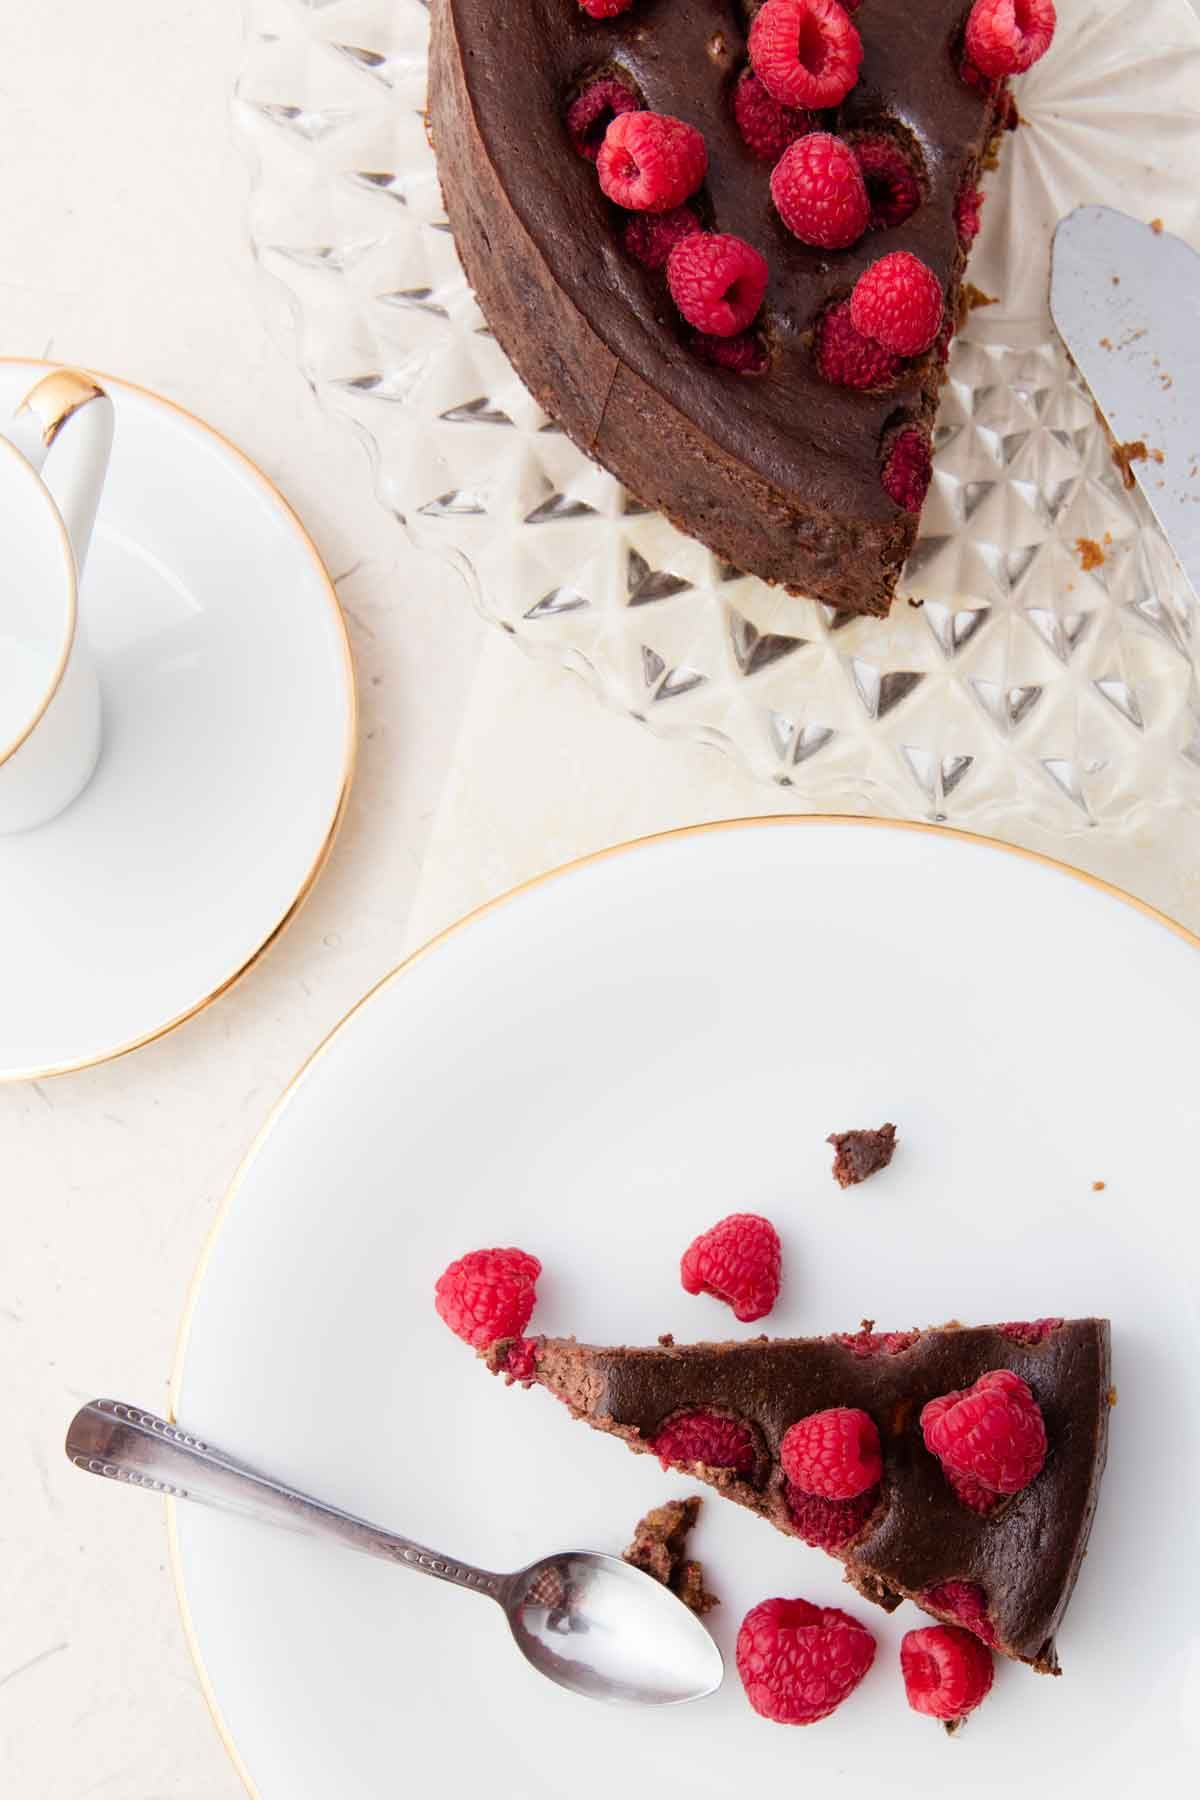 24 Easy Homemade Cheesecake Recipes How To Make The Best